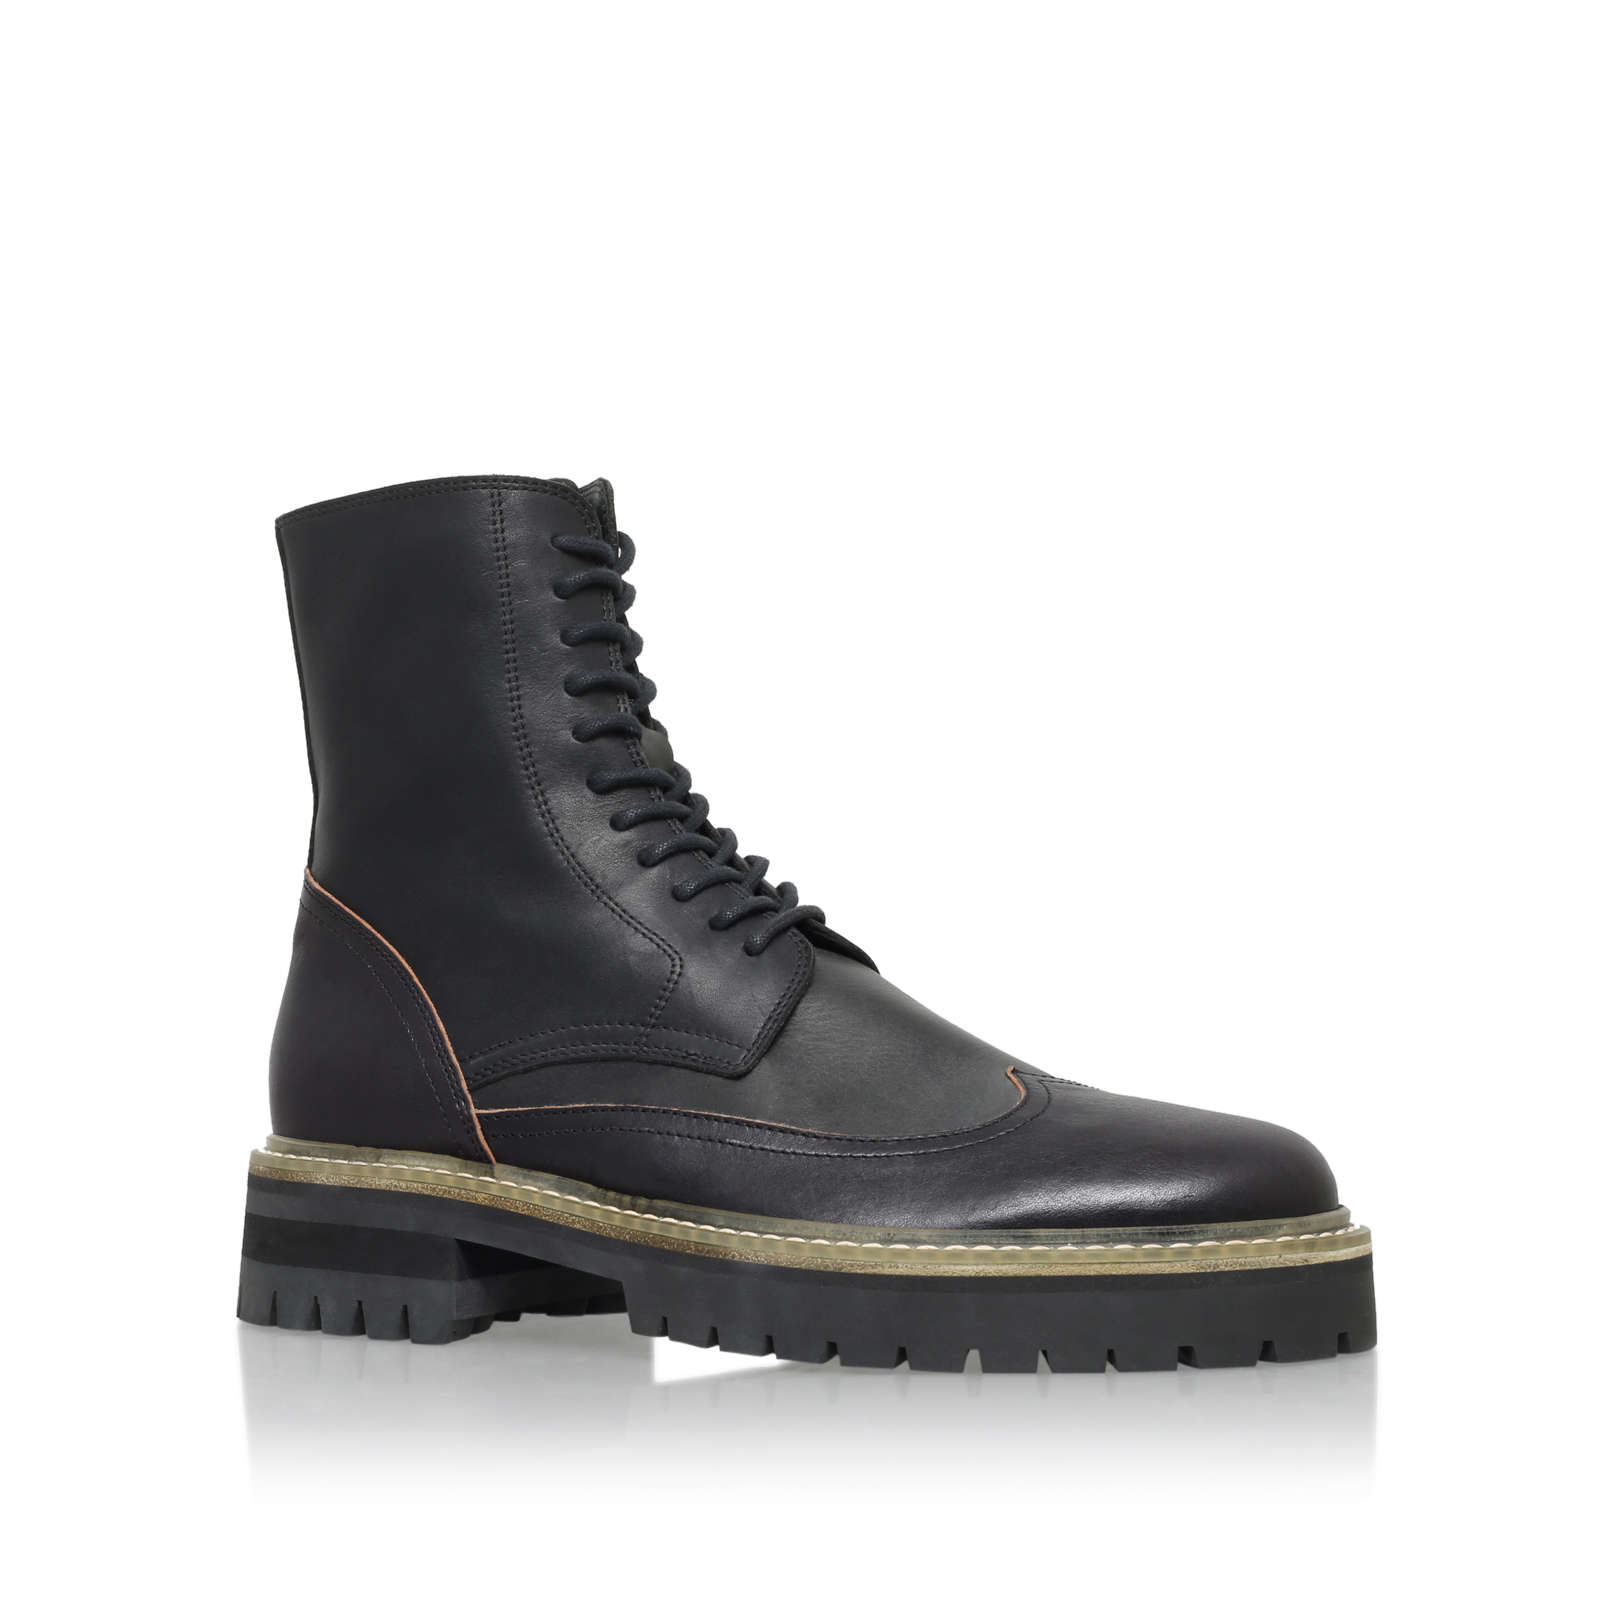 AVALANCHE BOOT